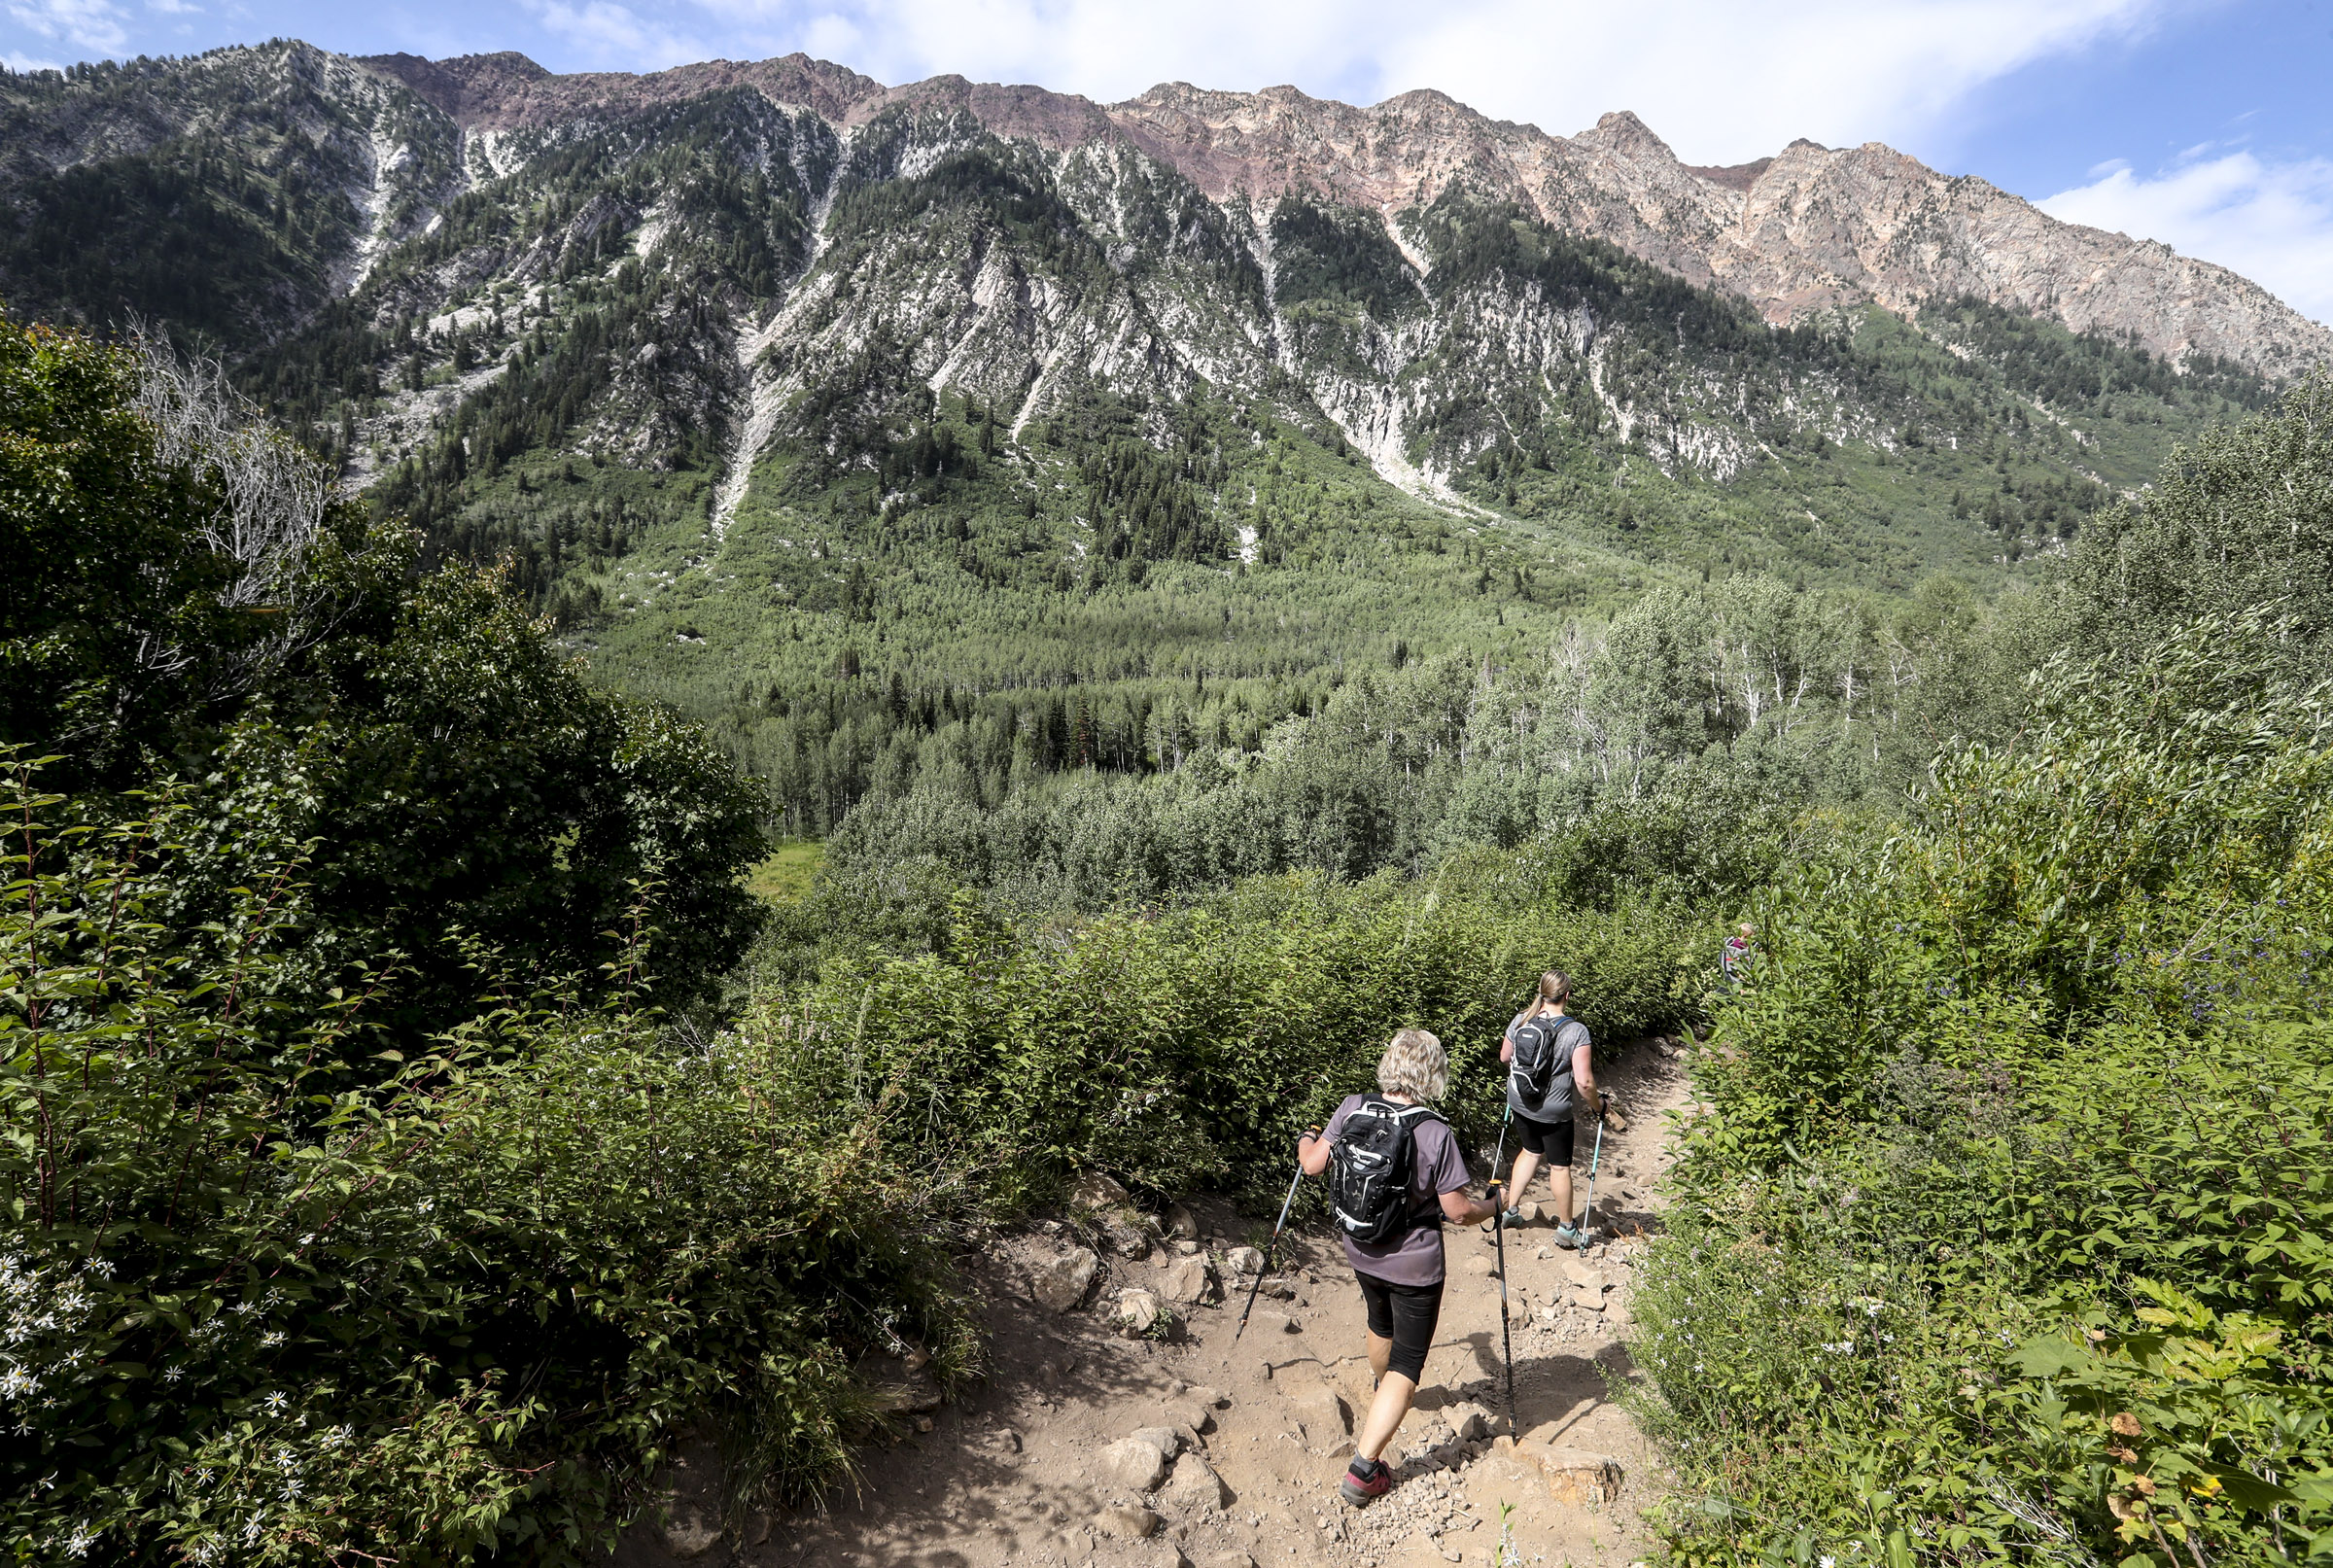 Hikers make their way down the White Pine Lake Trail in Little Cottonwood Canyon on Thursday, Aug. 22, 2019.